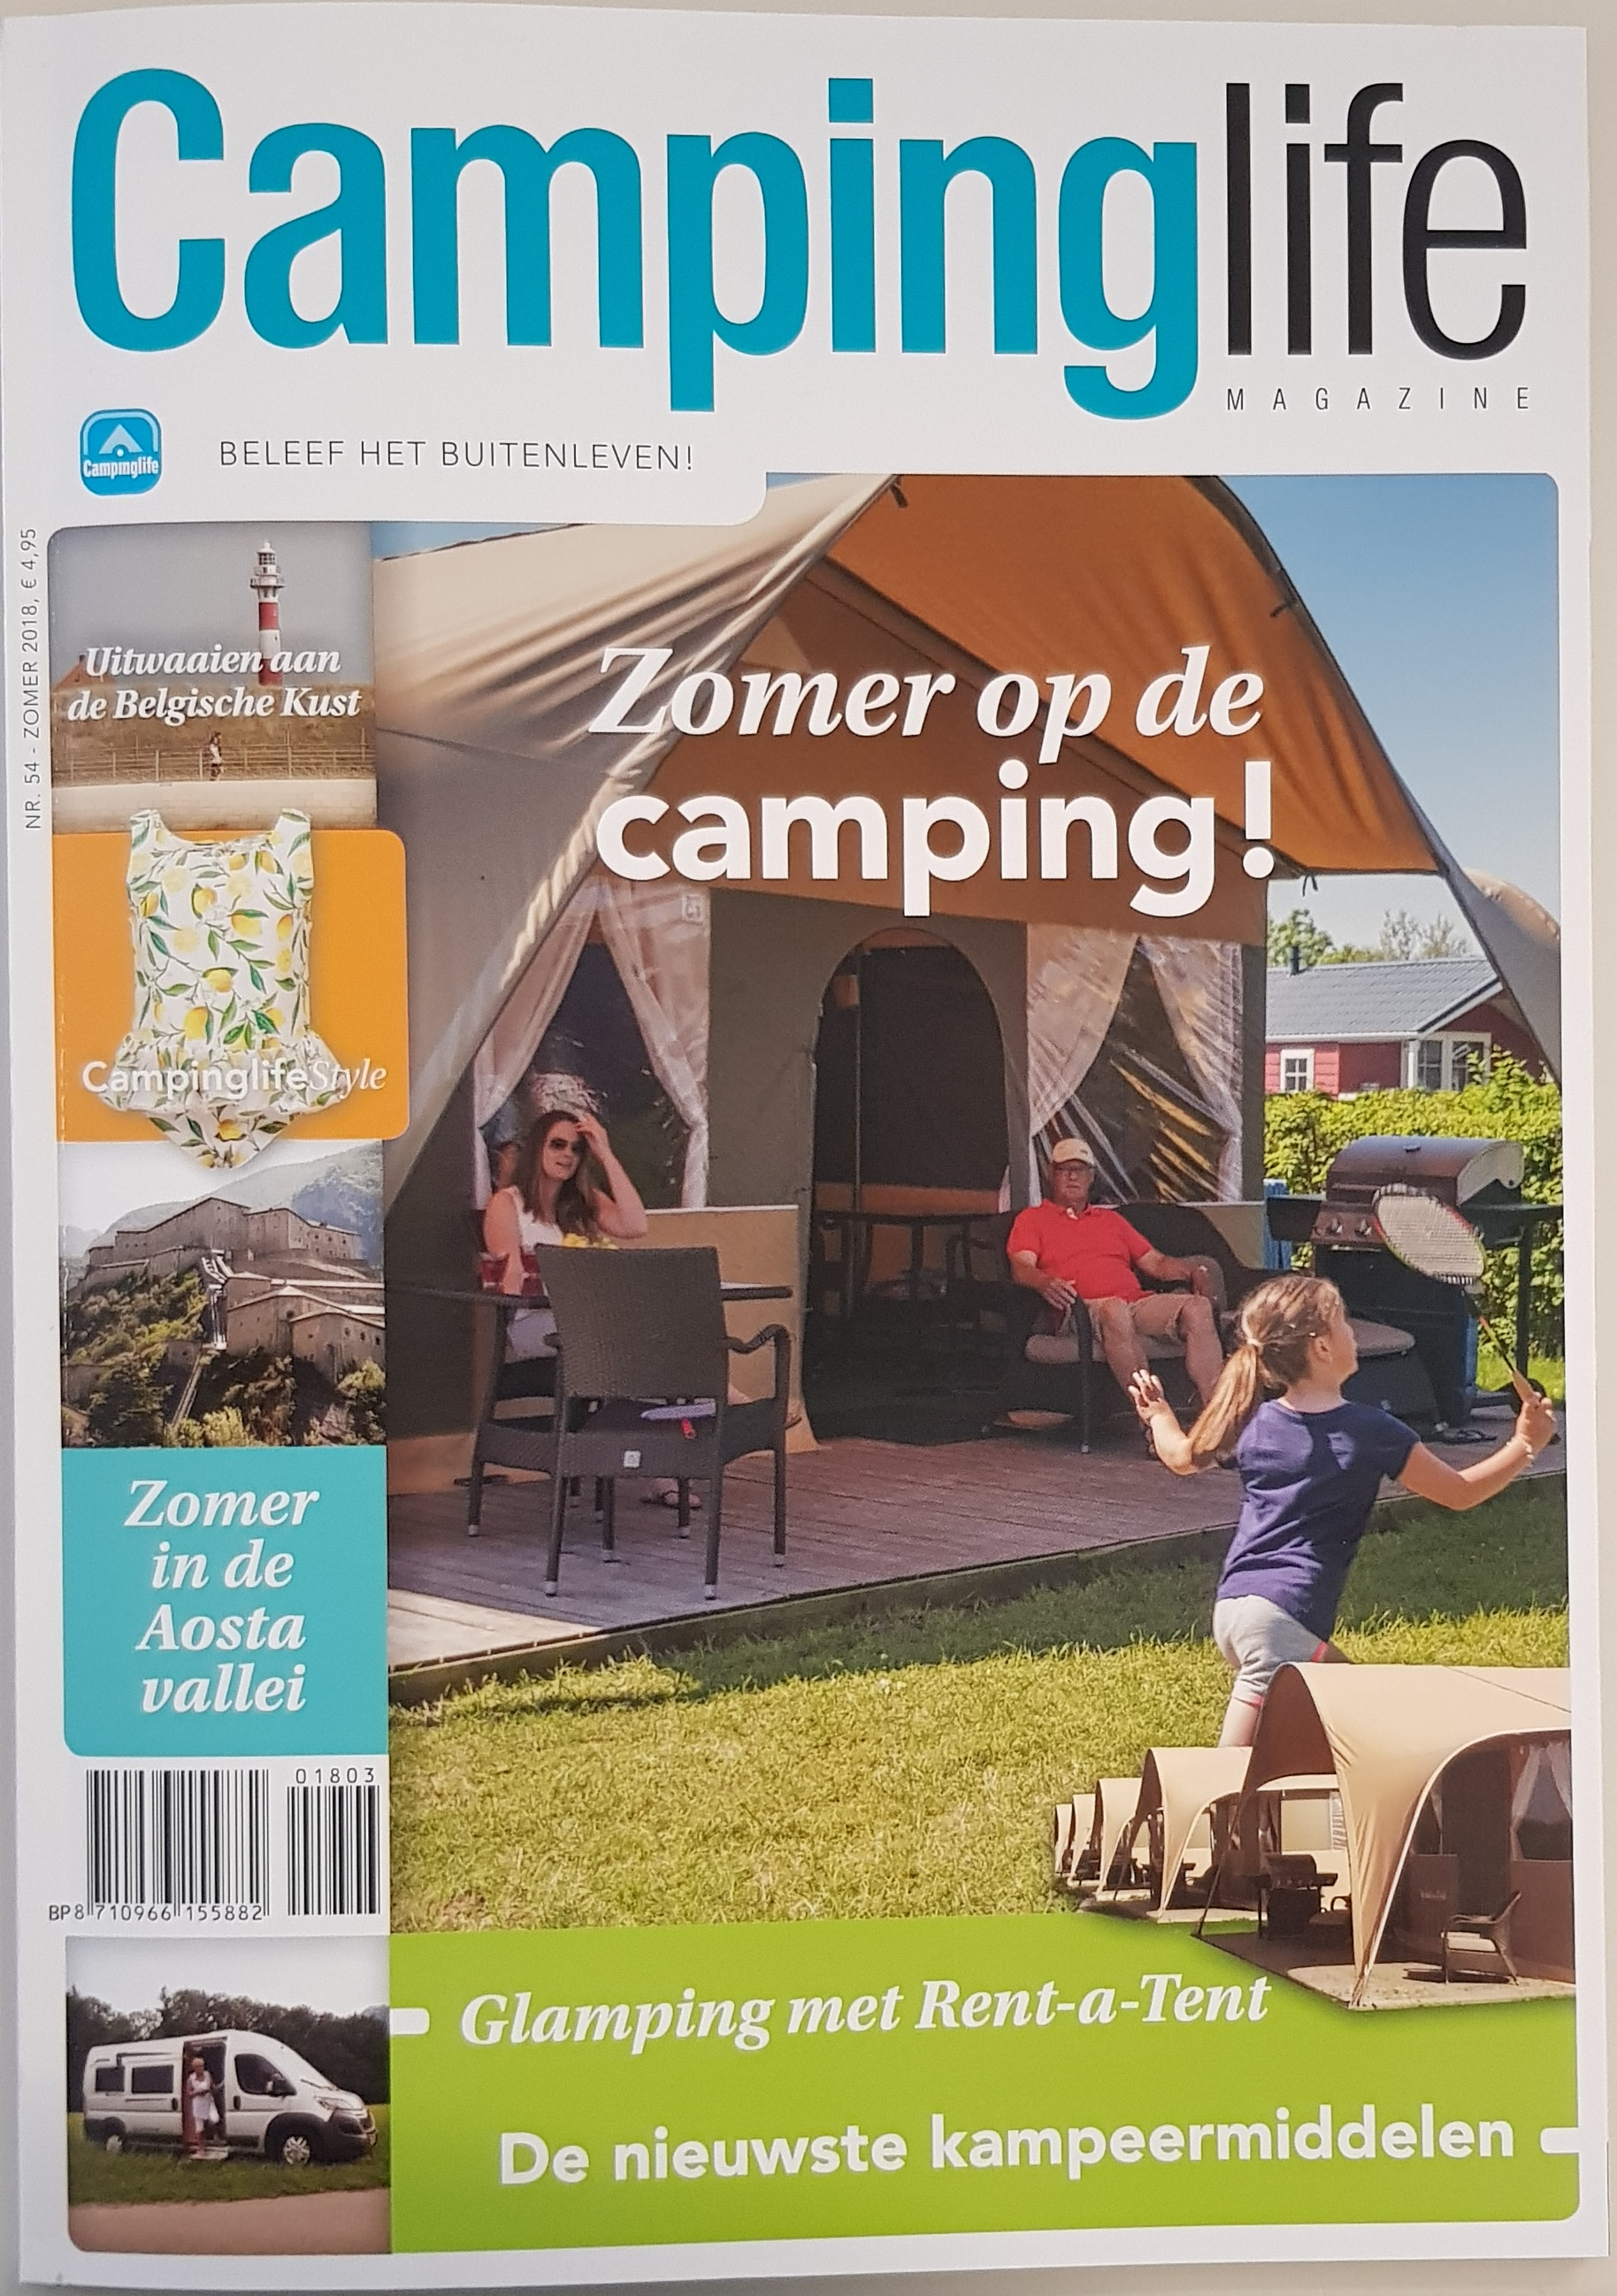 Campinglife zomer 2018 cover